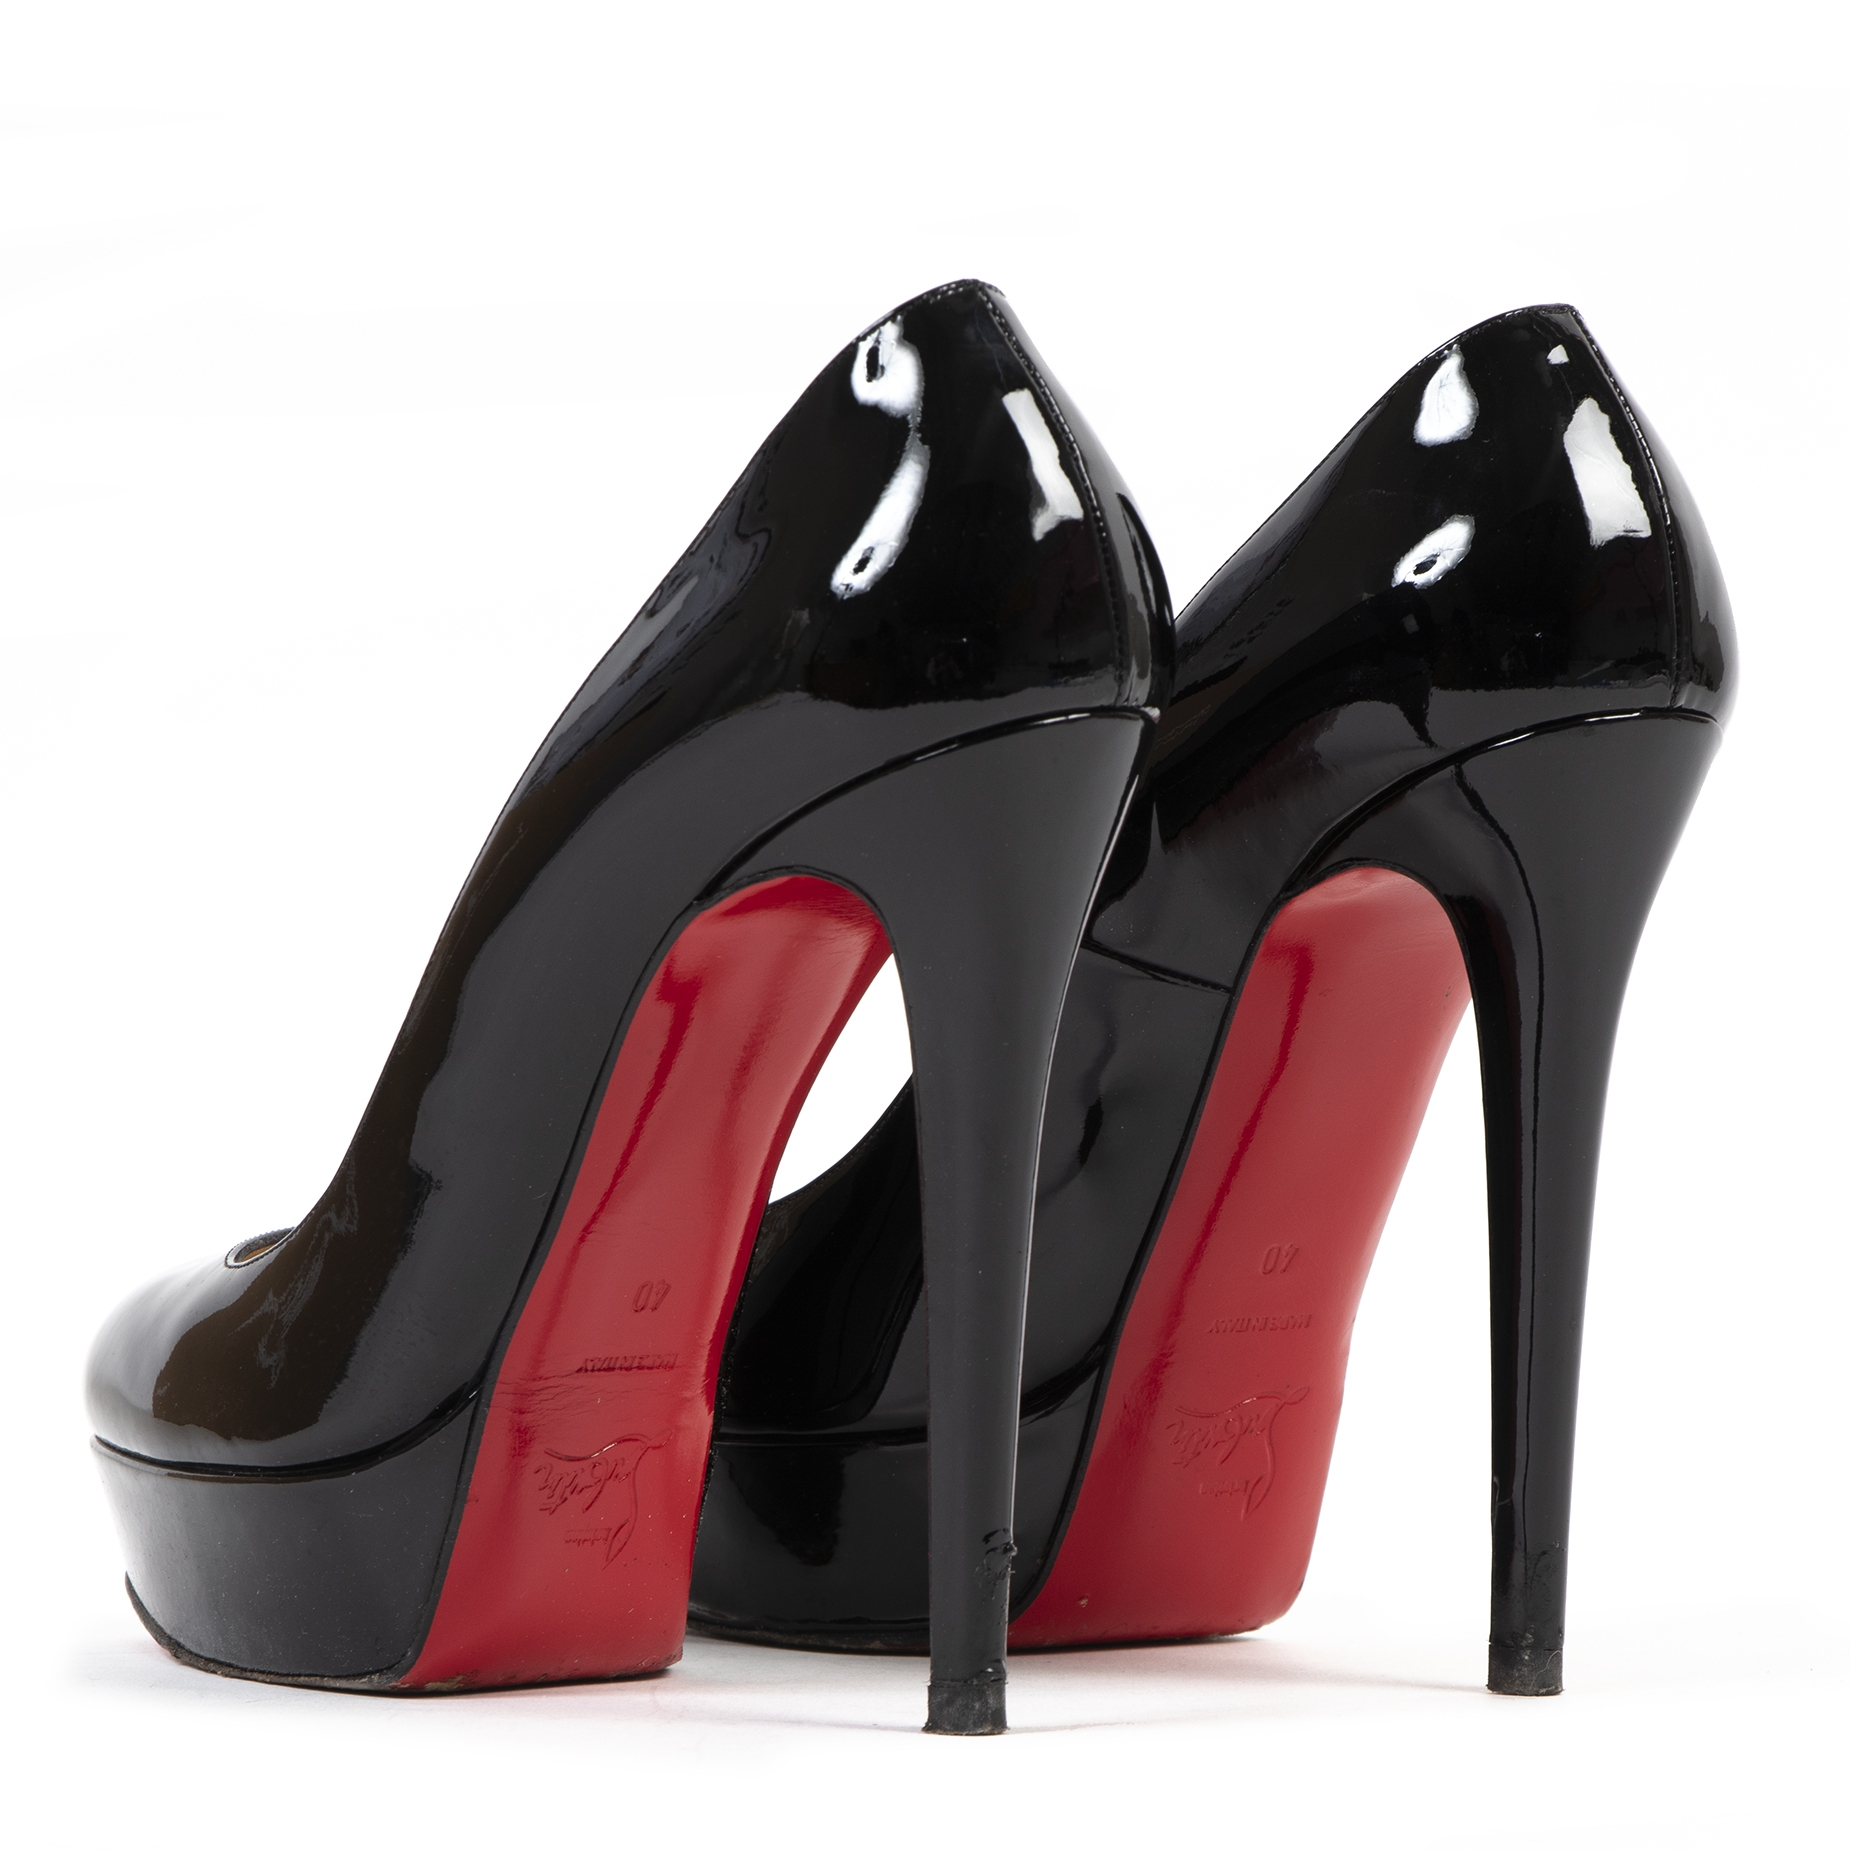 shop safe online Christian Louboutin Bianca 140 Patent Leather Black Pumps - Size 40